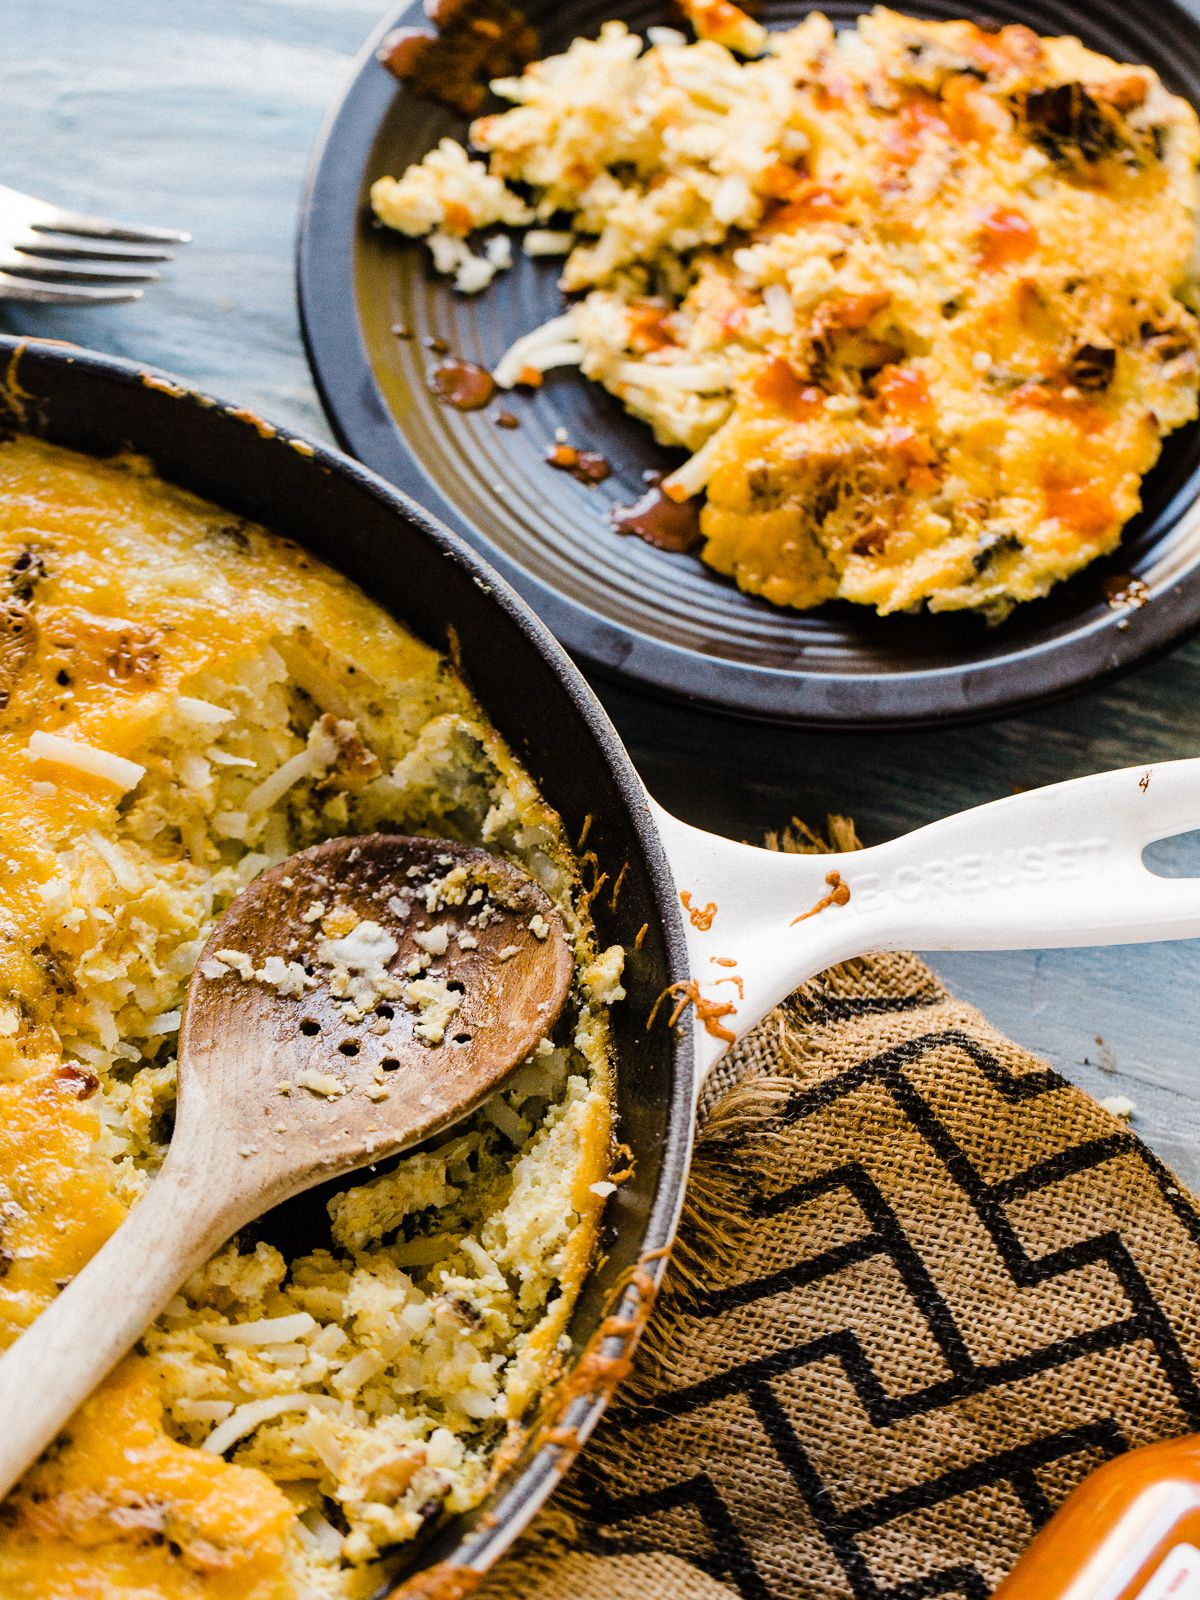 Pour 1 stick of melted butter evenly over the top of the potatoes. Egg Bacon Hash Brown Breakfast Skillet - Dad With A Pan ...